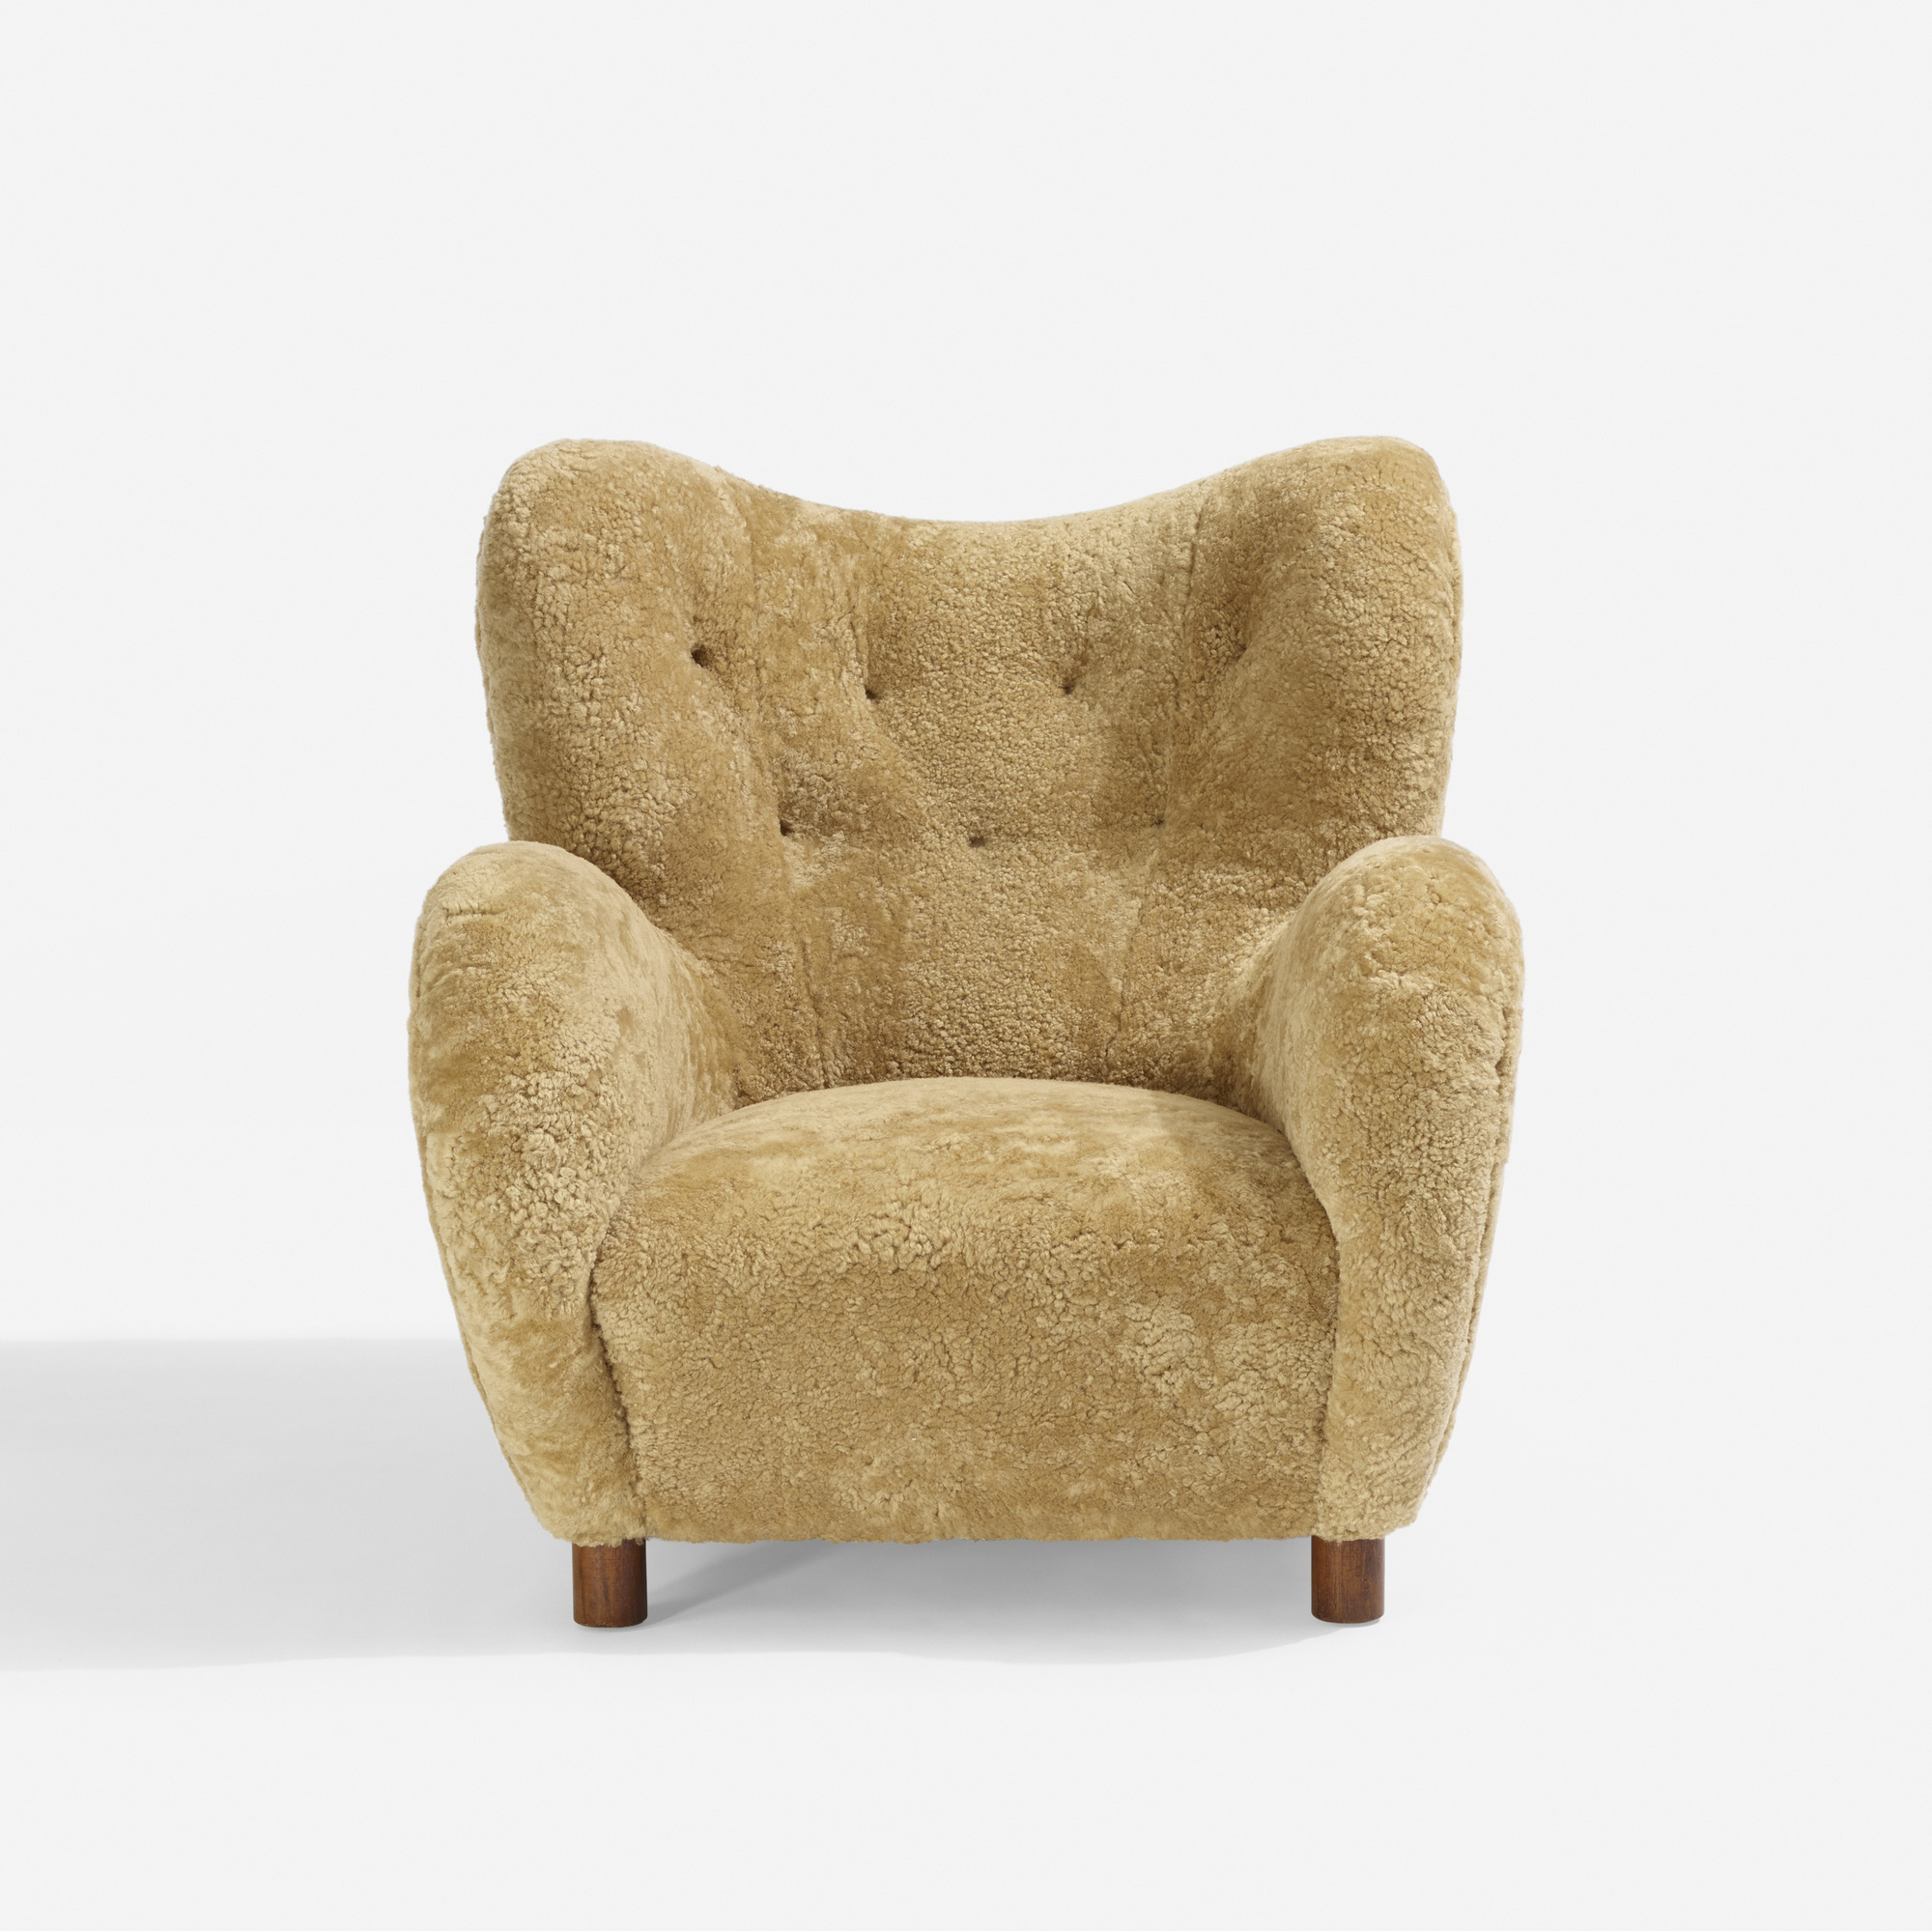 160: Flemming Lassen, attribution / lounge chair (1 of 3)